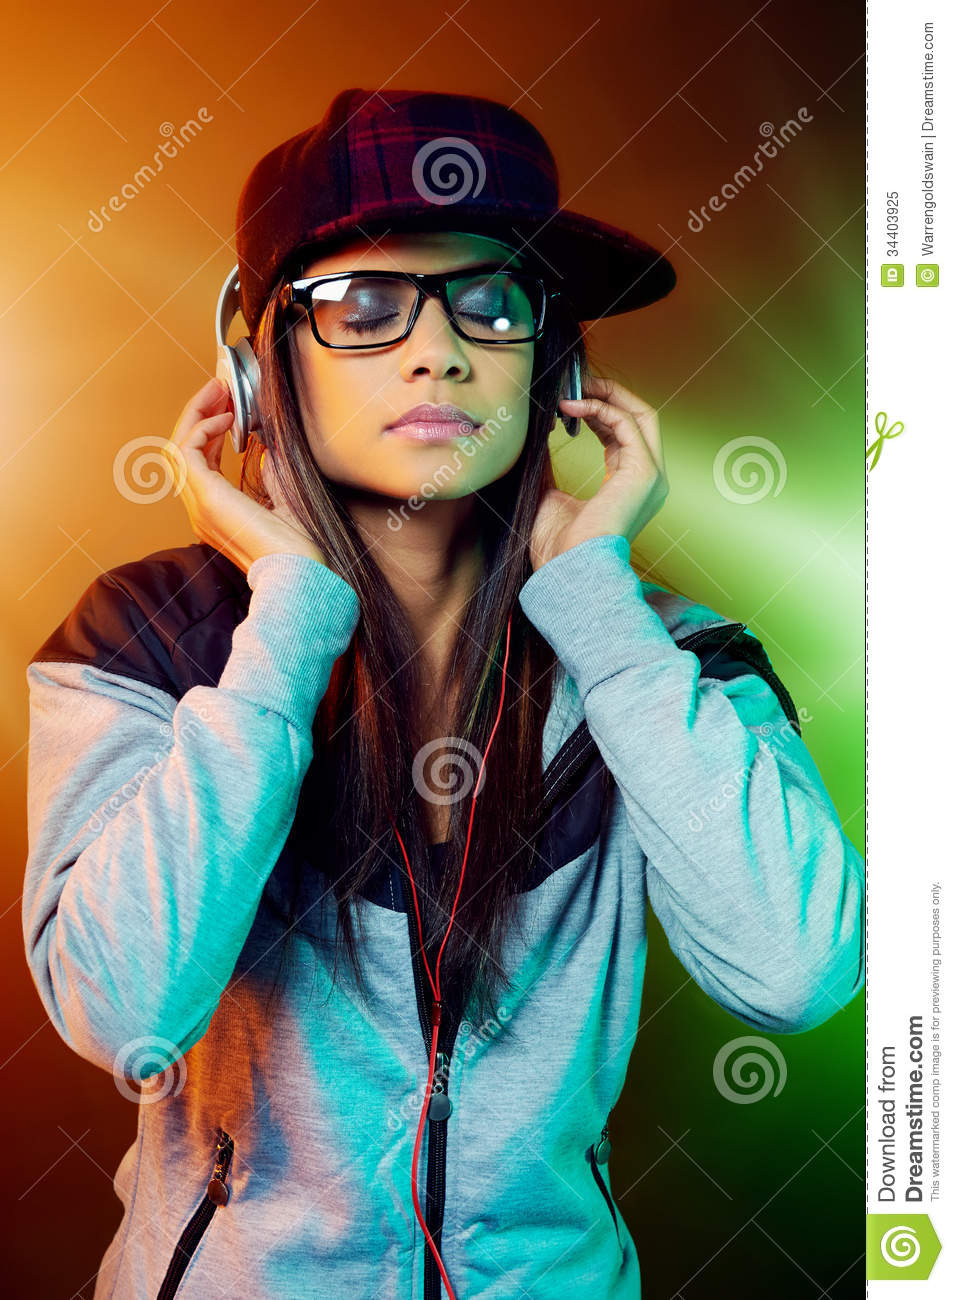 womens image in hip hop Rap and hip-hop music are a widely popular and influence of rap and hip-hop lyrics on male body image and attitudes toward women authors lorena munoz, university l (2011) influence of rap and hip-hop lyrics on male body image and attitudes toward women available at: https.